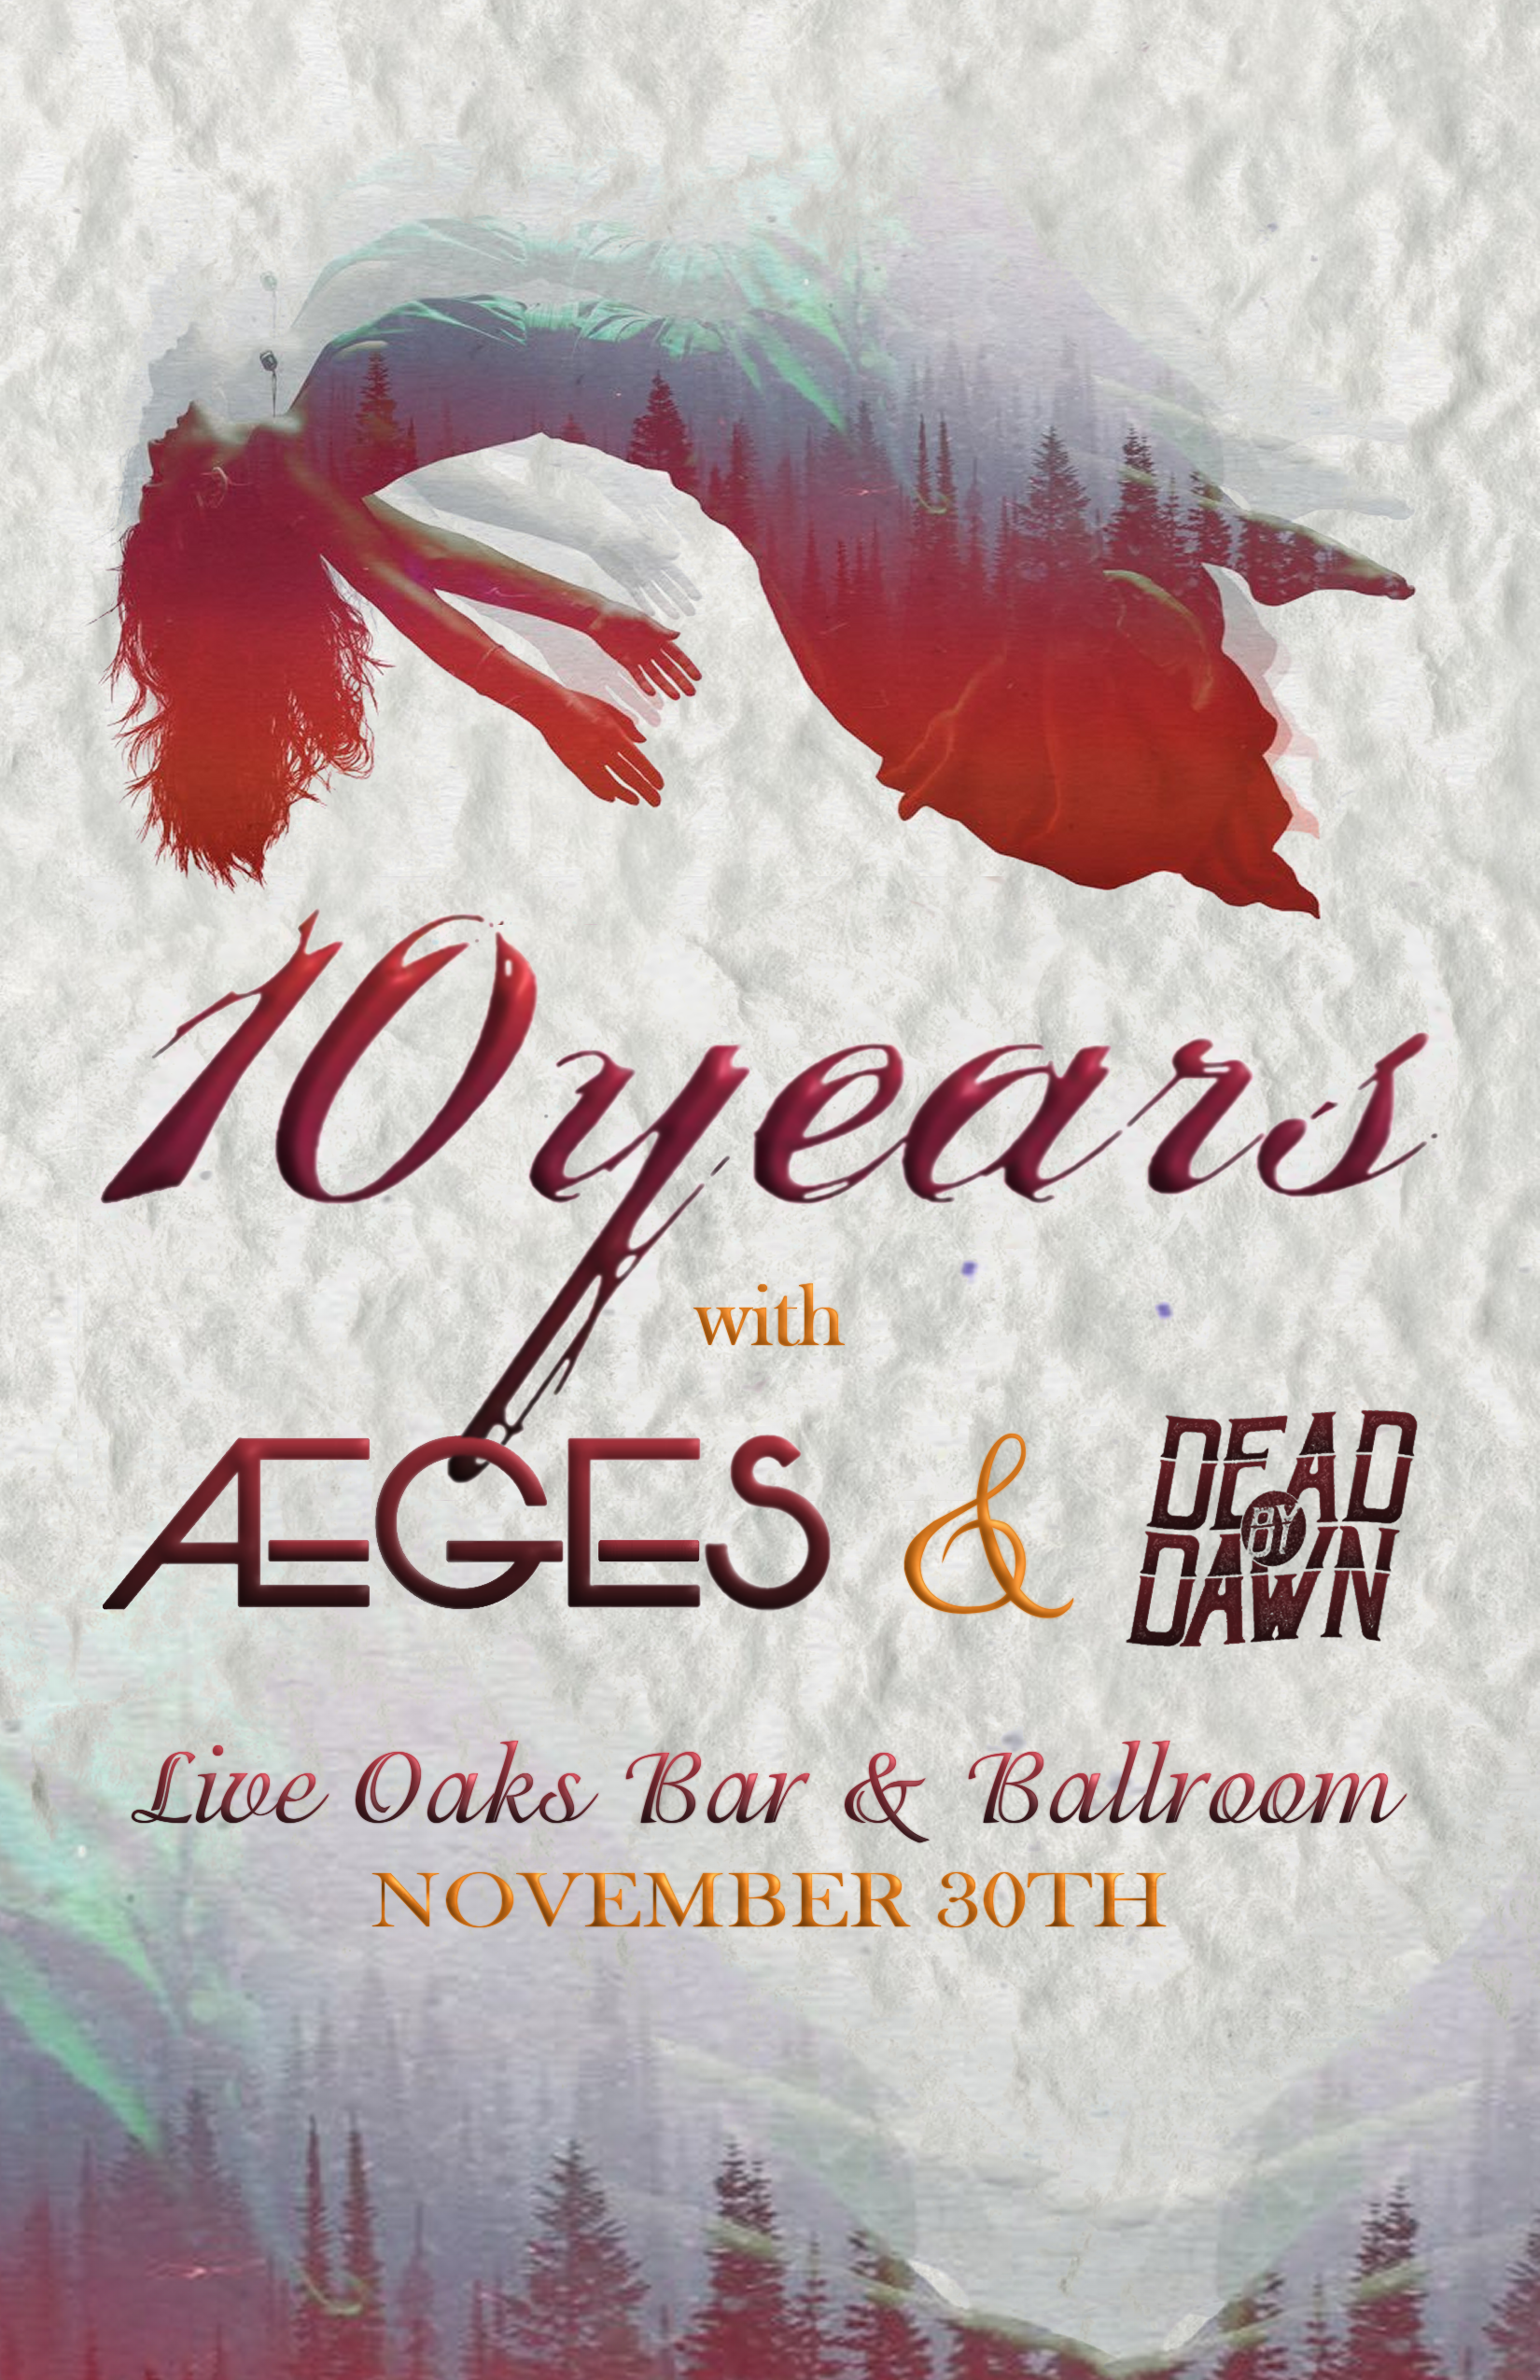 10 Years • Aeges • Dead by Dawn